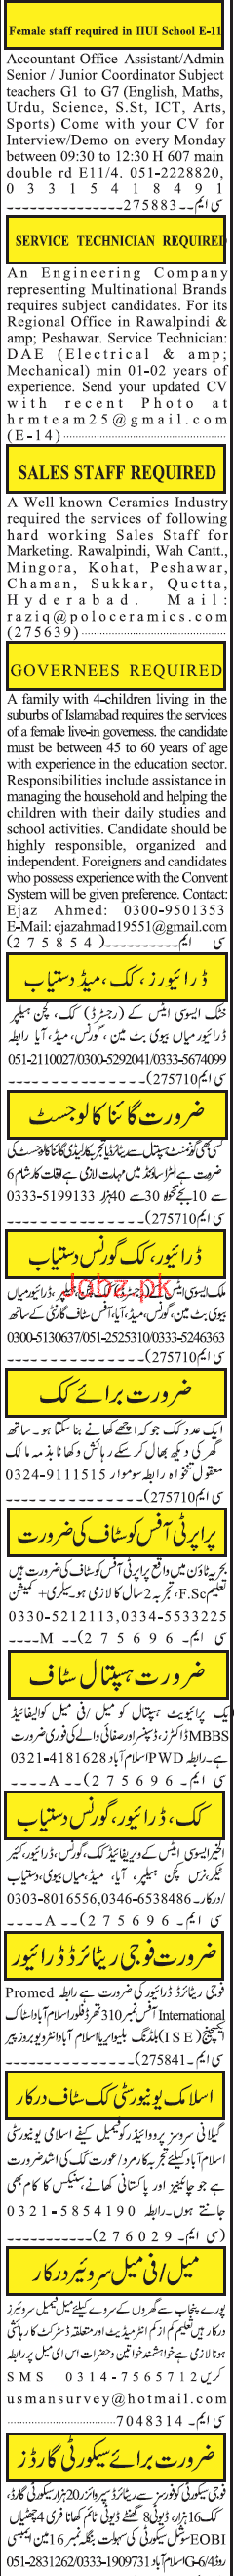 Accountant, Office Assistants Job Opportunity